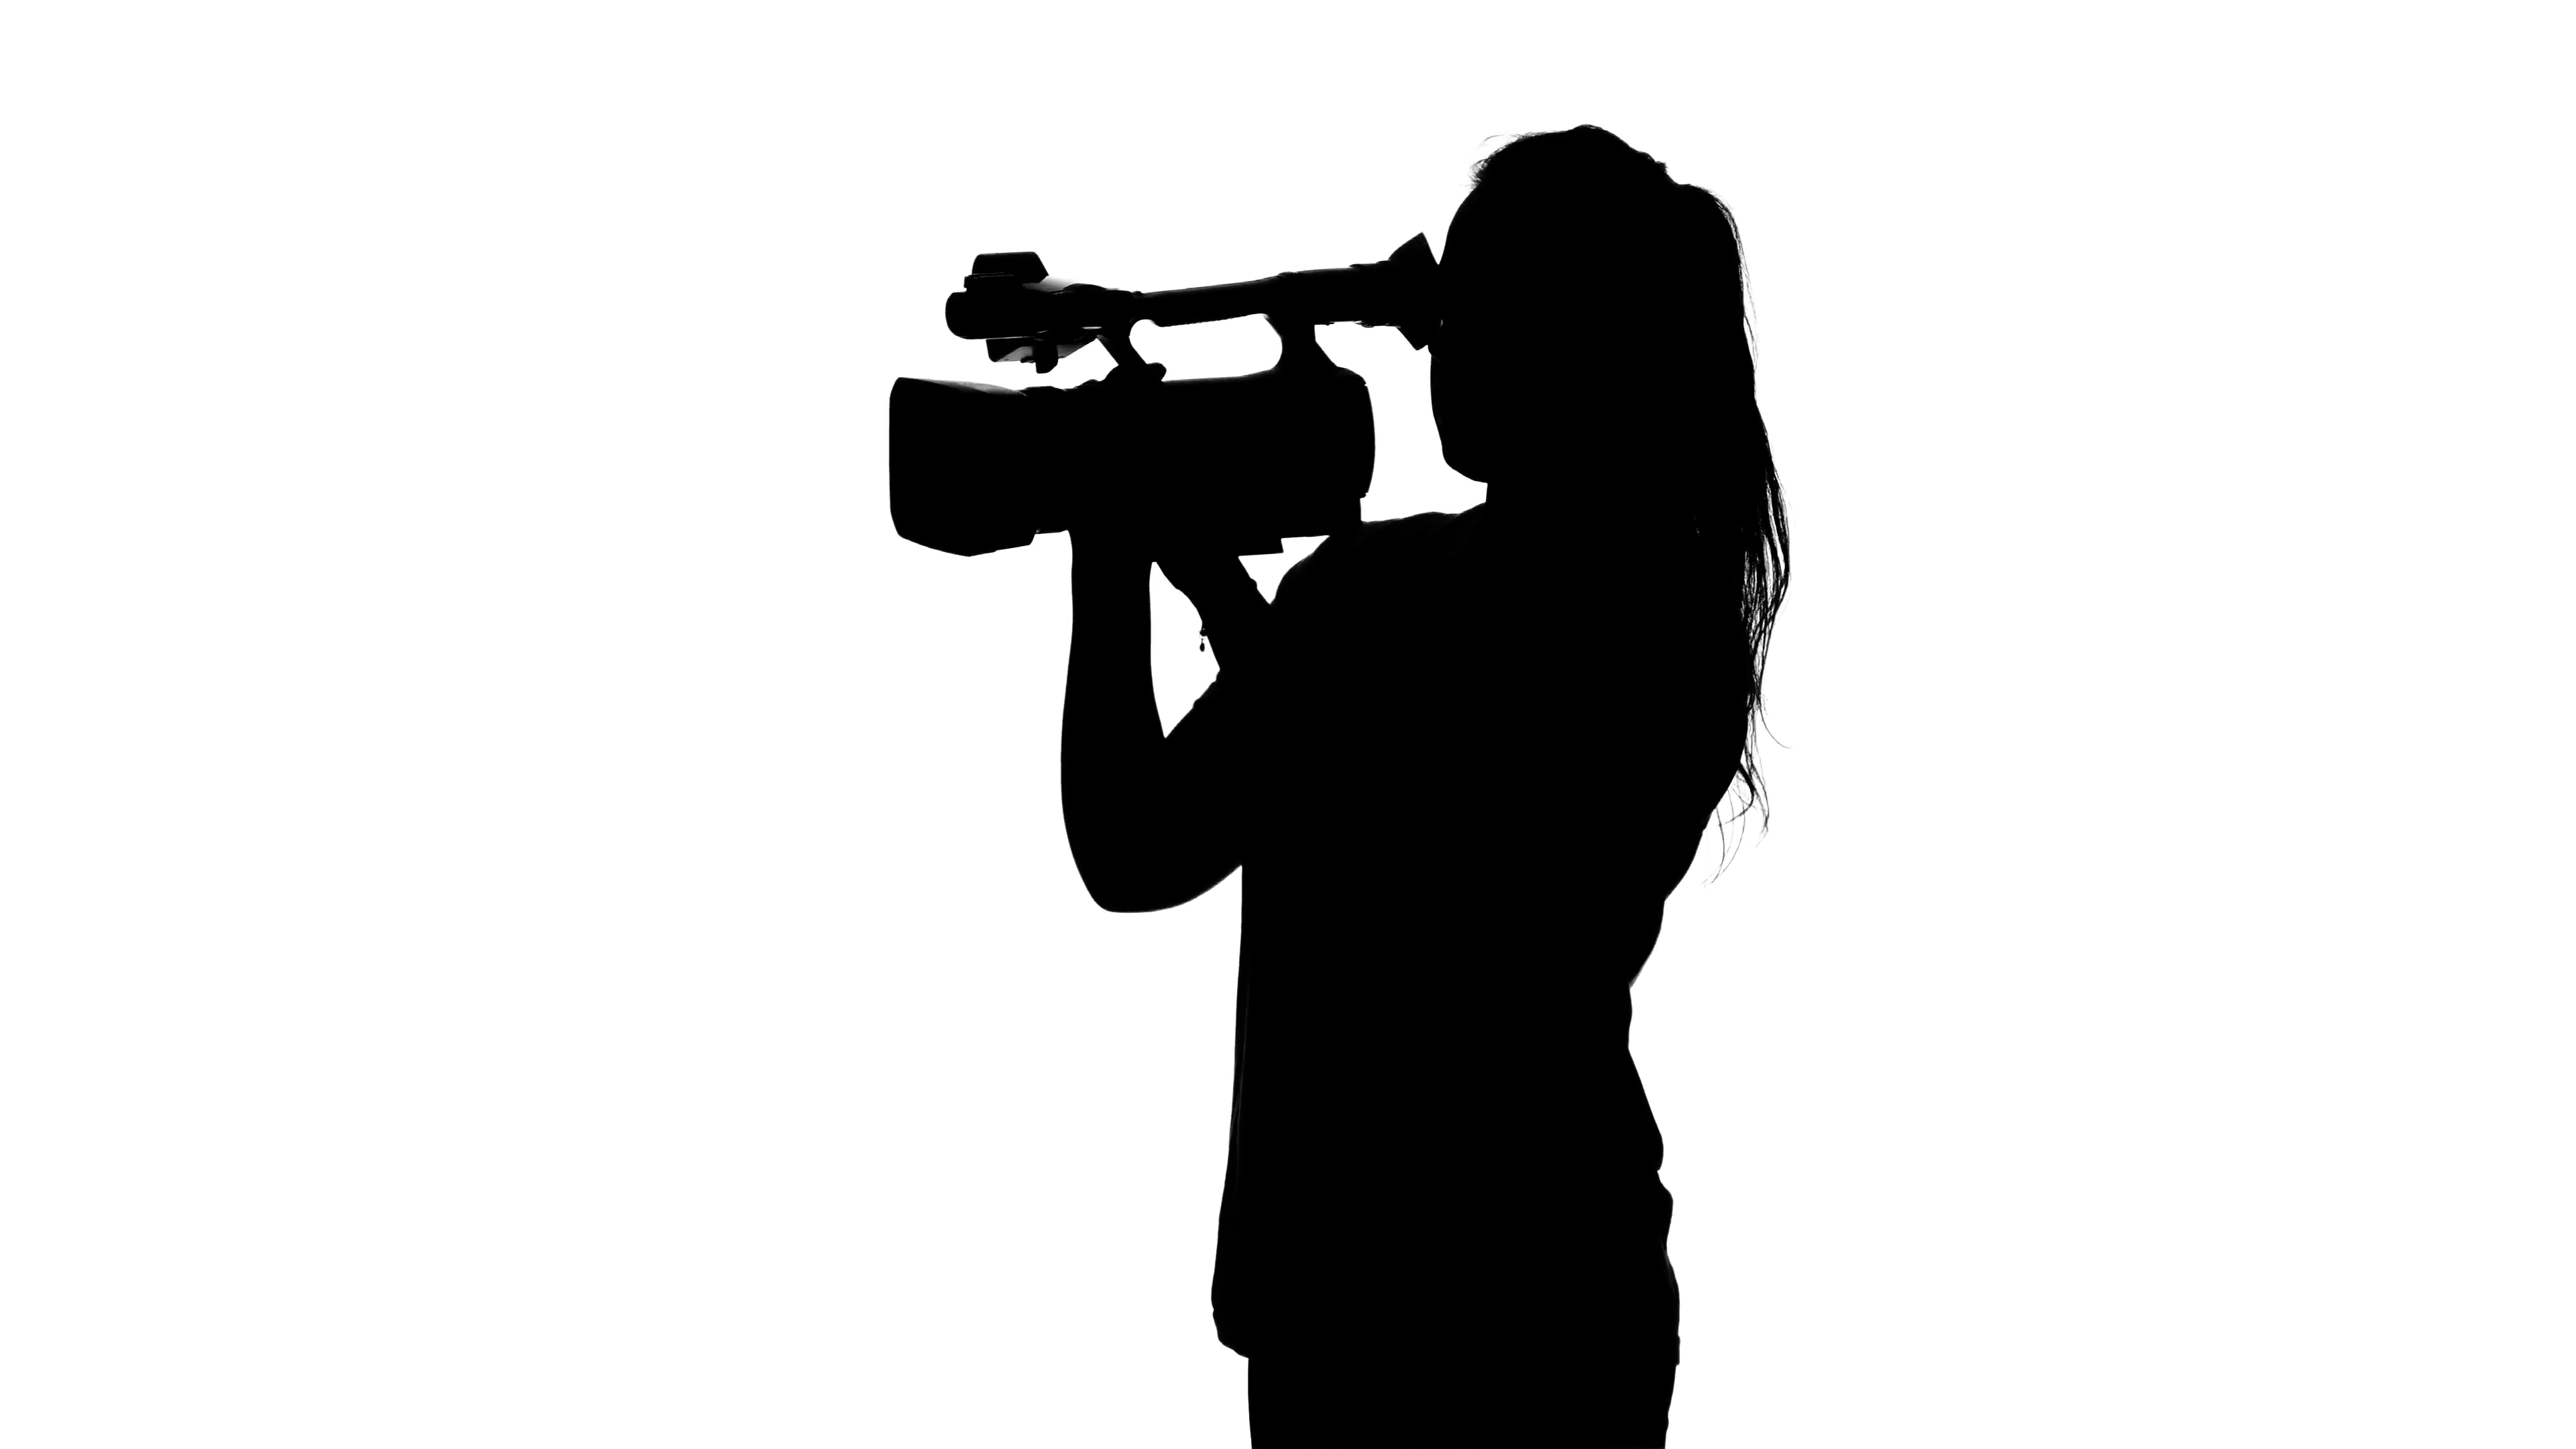 3840x2160 Studio Photography On A Professional Camera. White. Silhouette